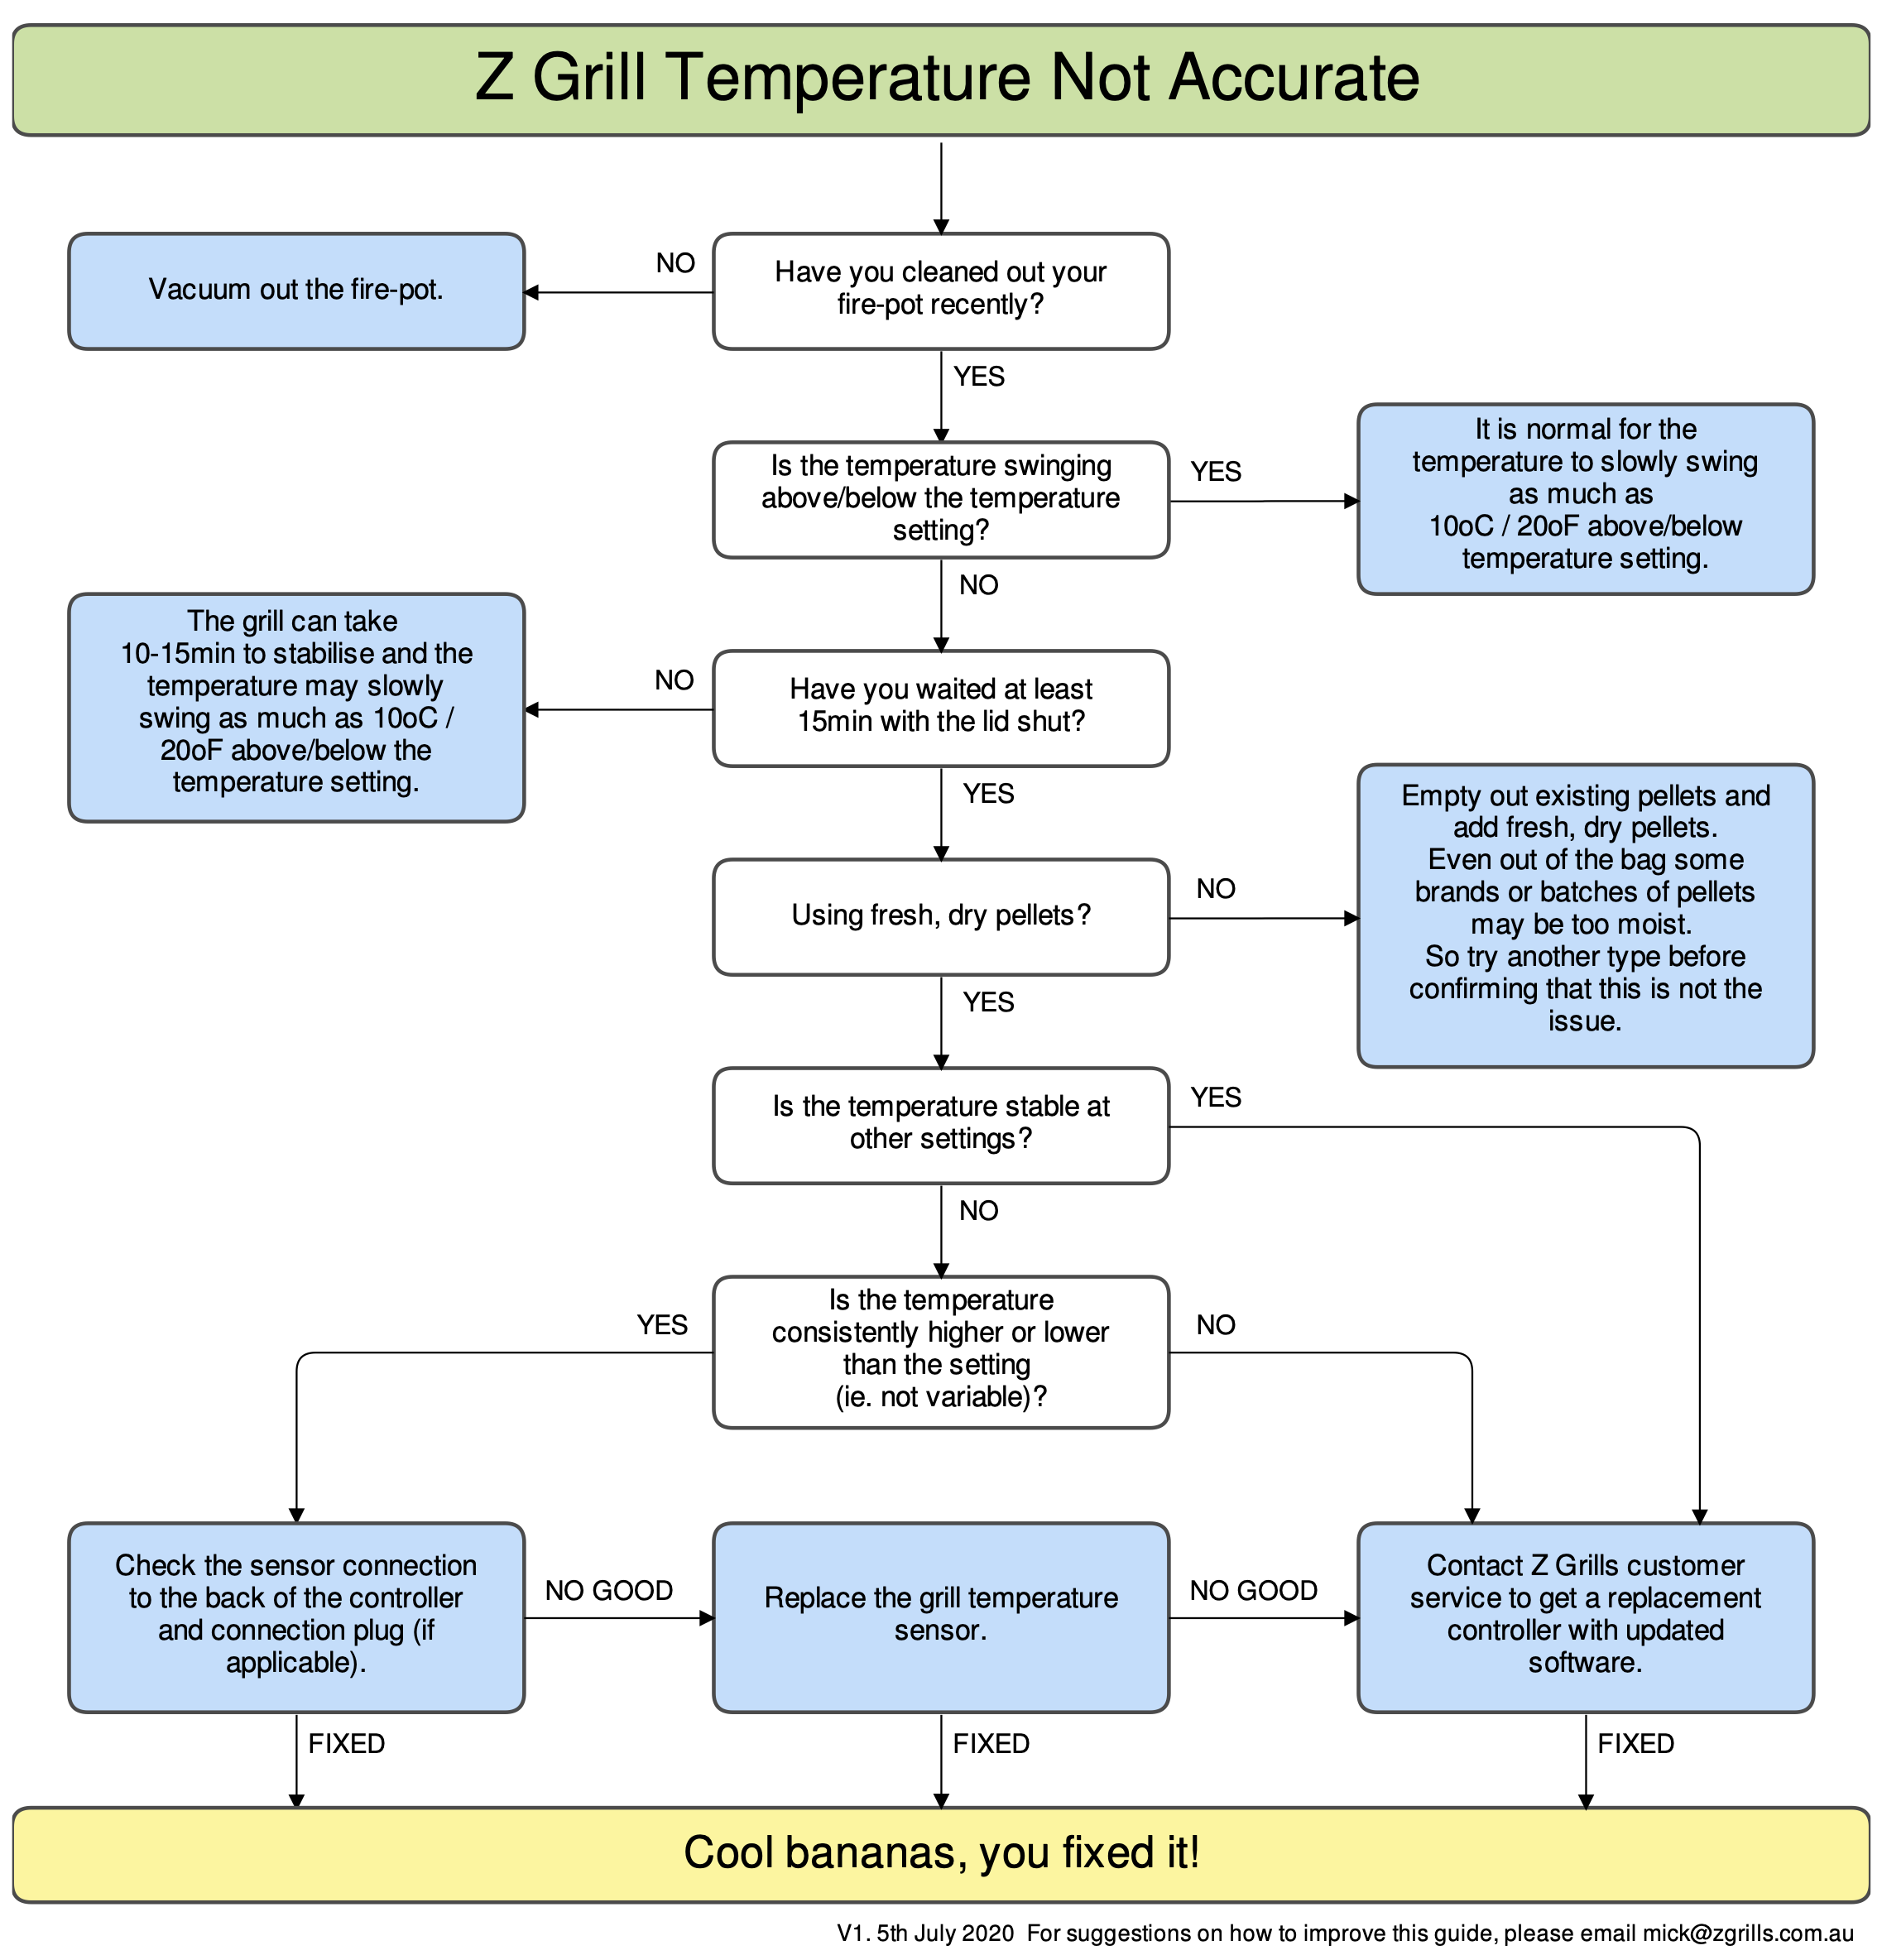 Z Grills Temperatures Not Accurate Troubleshooting